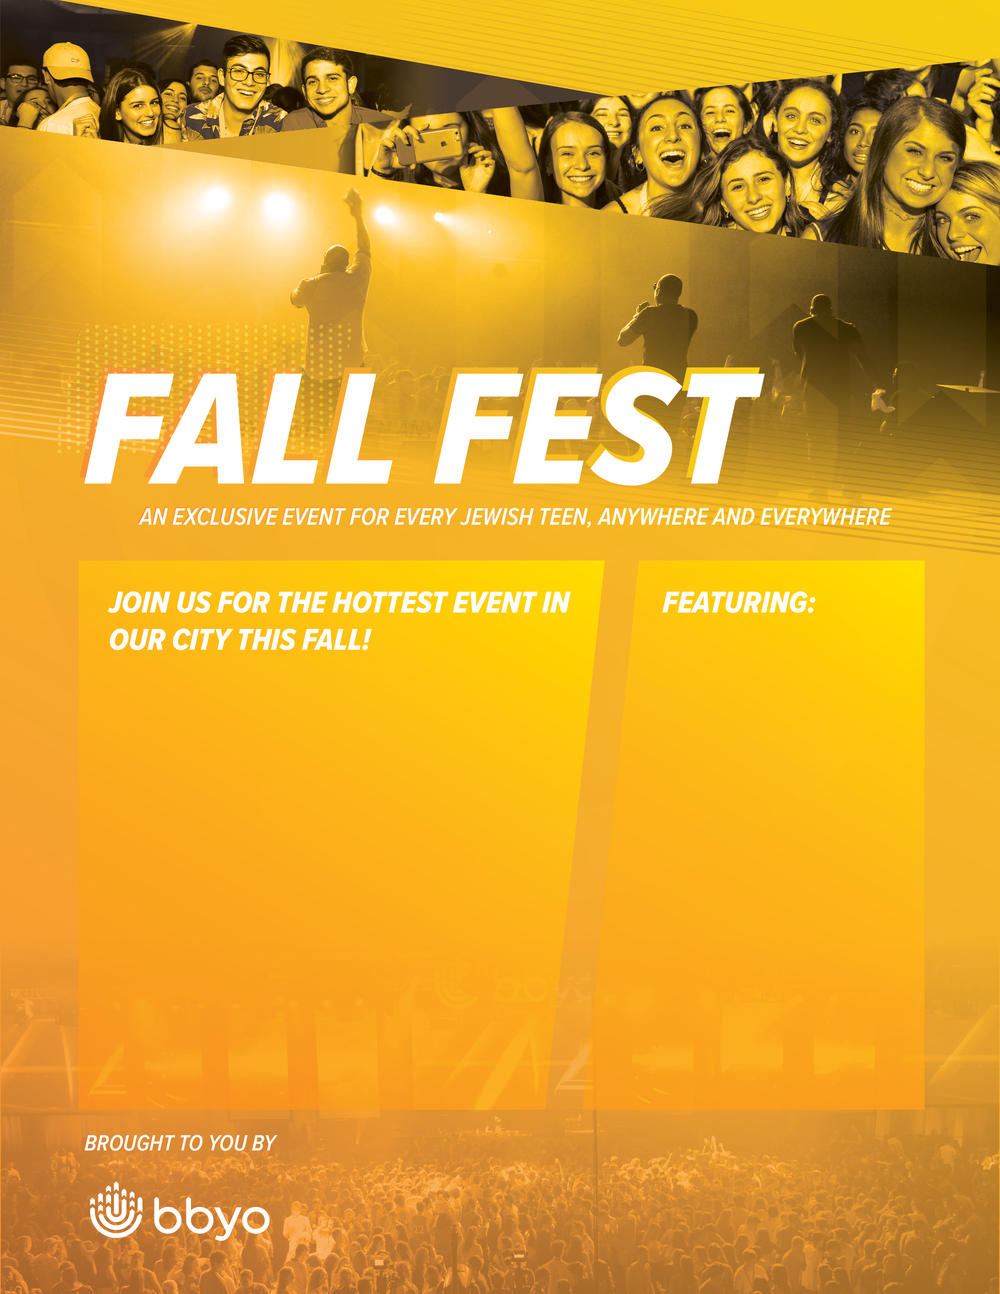 Flyer Template    Find flyer templates for any kind of Fall Fest event—charity rides, concerts, movie screenings, game nights, interactive dining or just general Fall Fest.